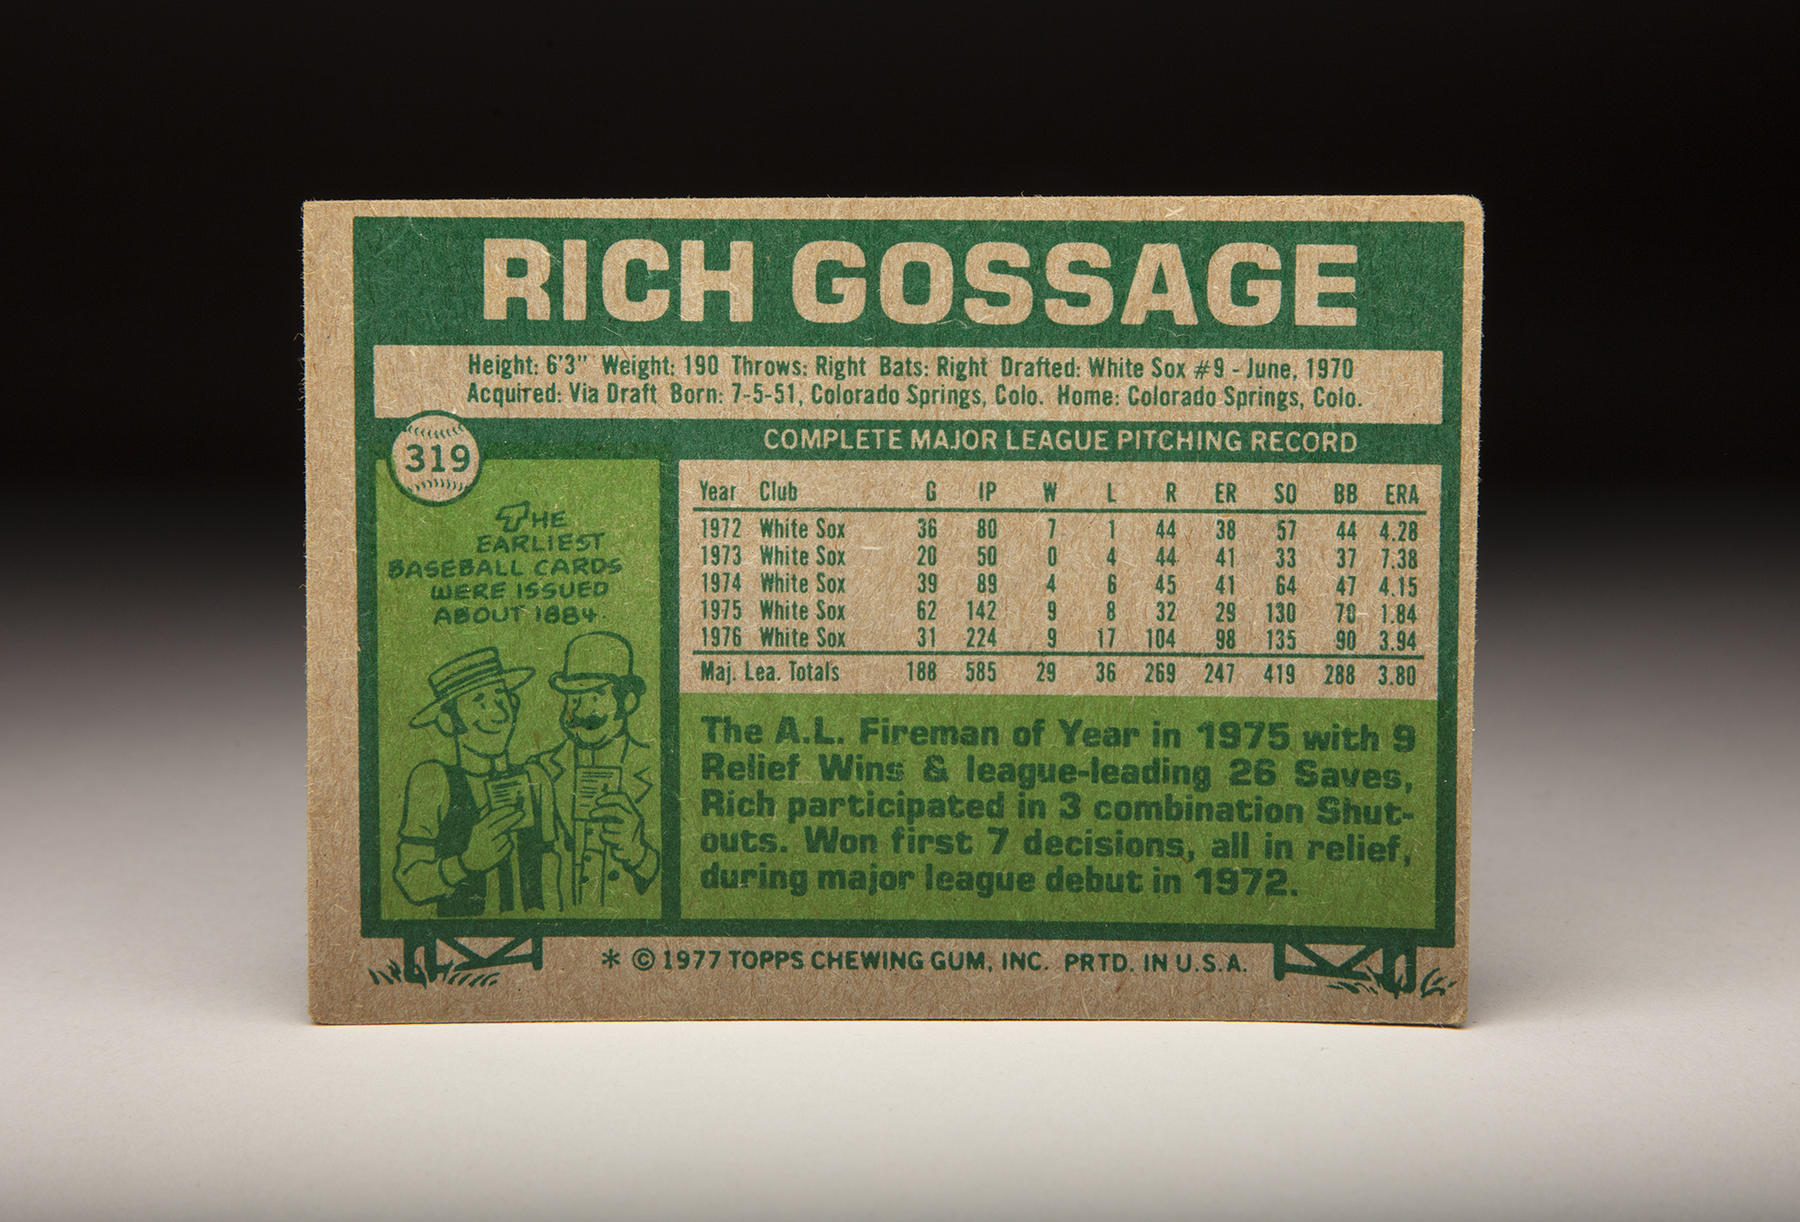 The reverse of Topps' 1977 Rich Gossage card features the Hall of Famer's statistics, along with a fact about the history of baseball cards. (Milo Stewart Jr./National Baseball Hall of Fame and Museum)